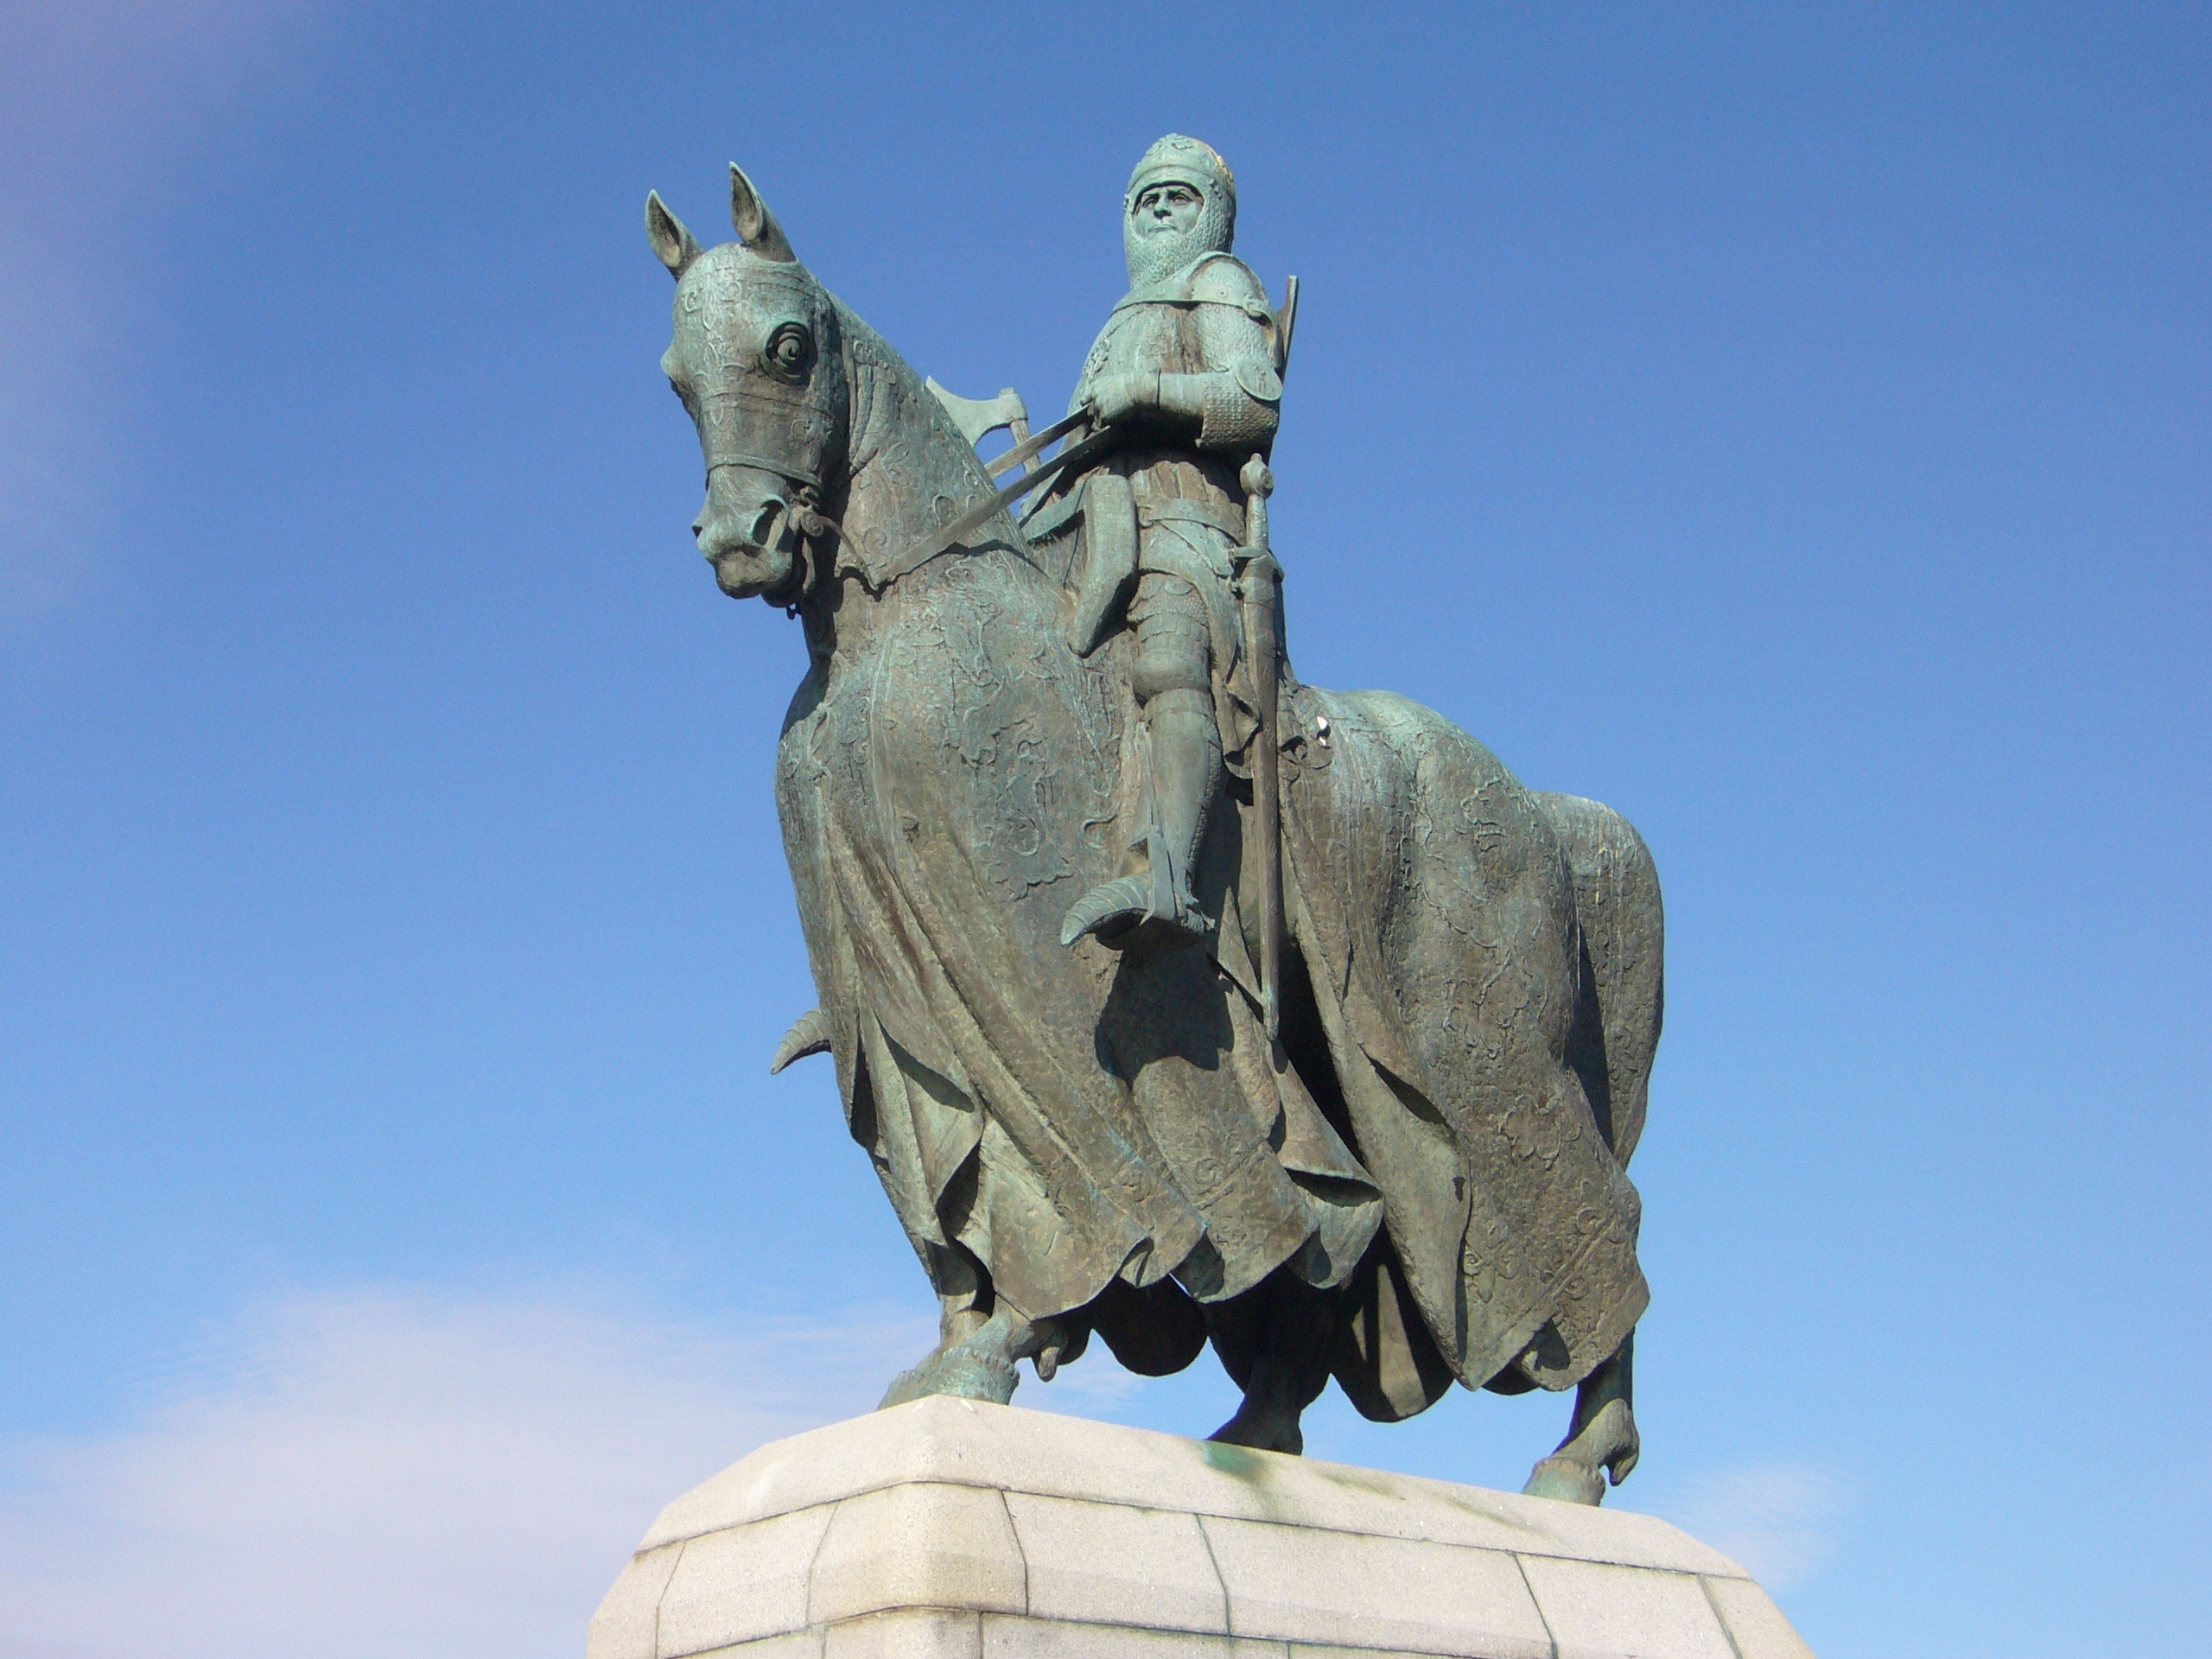 Http Commons Wikimedia Org Wiki File Robert The Bruce Statue Bannockburn Geograph Org Uk 1538090 Jpg